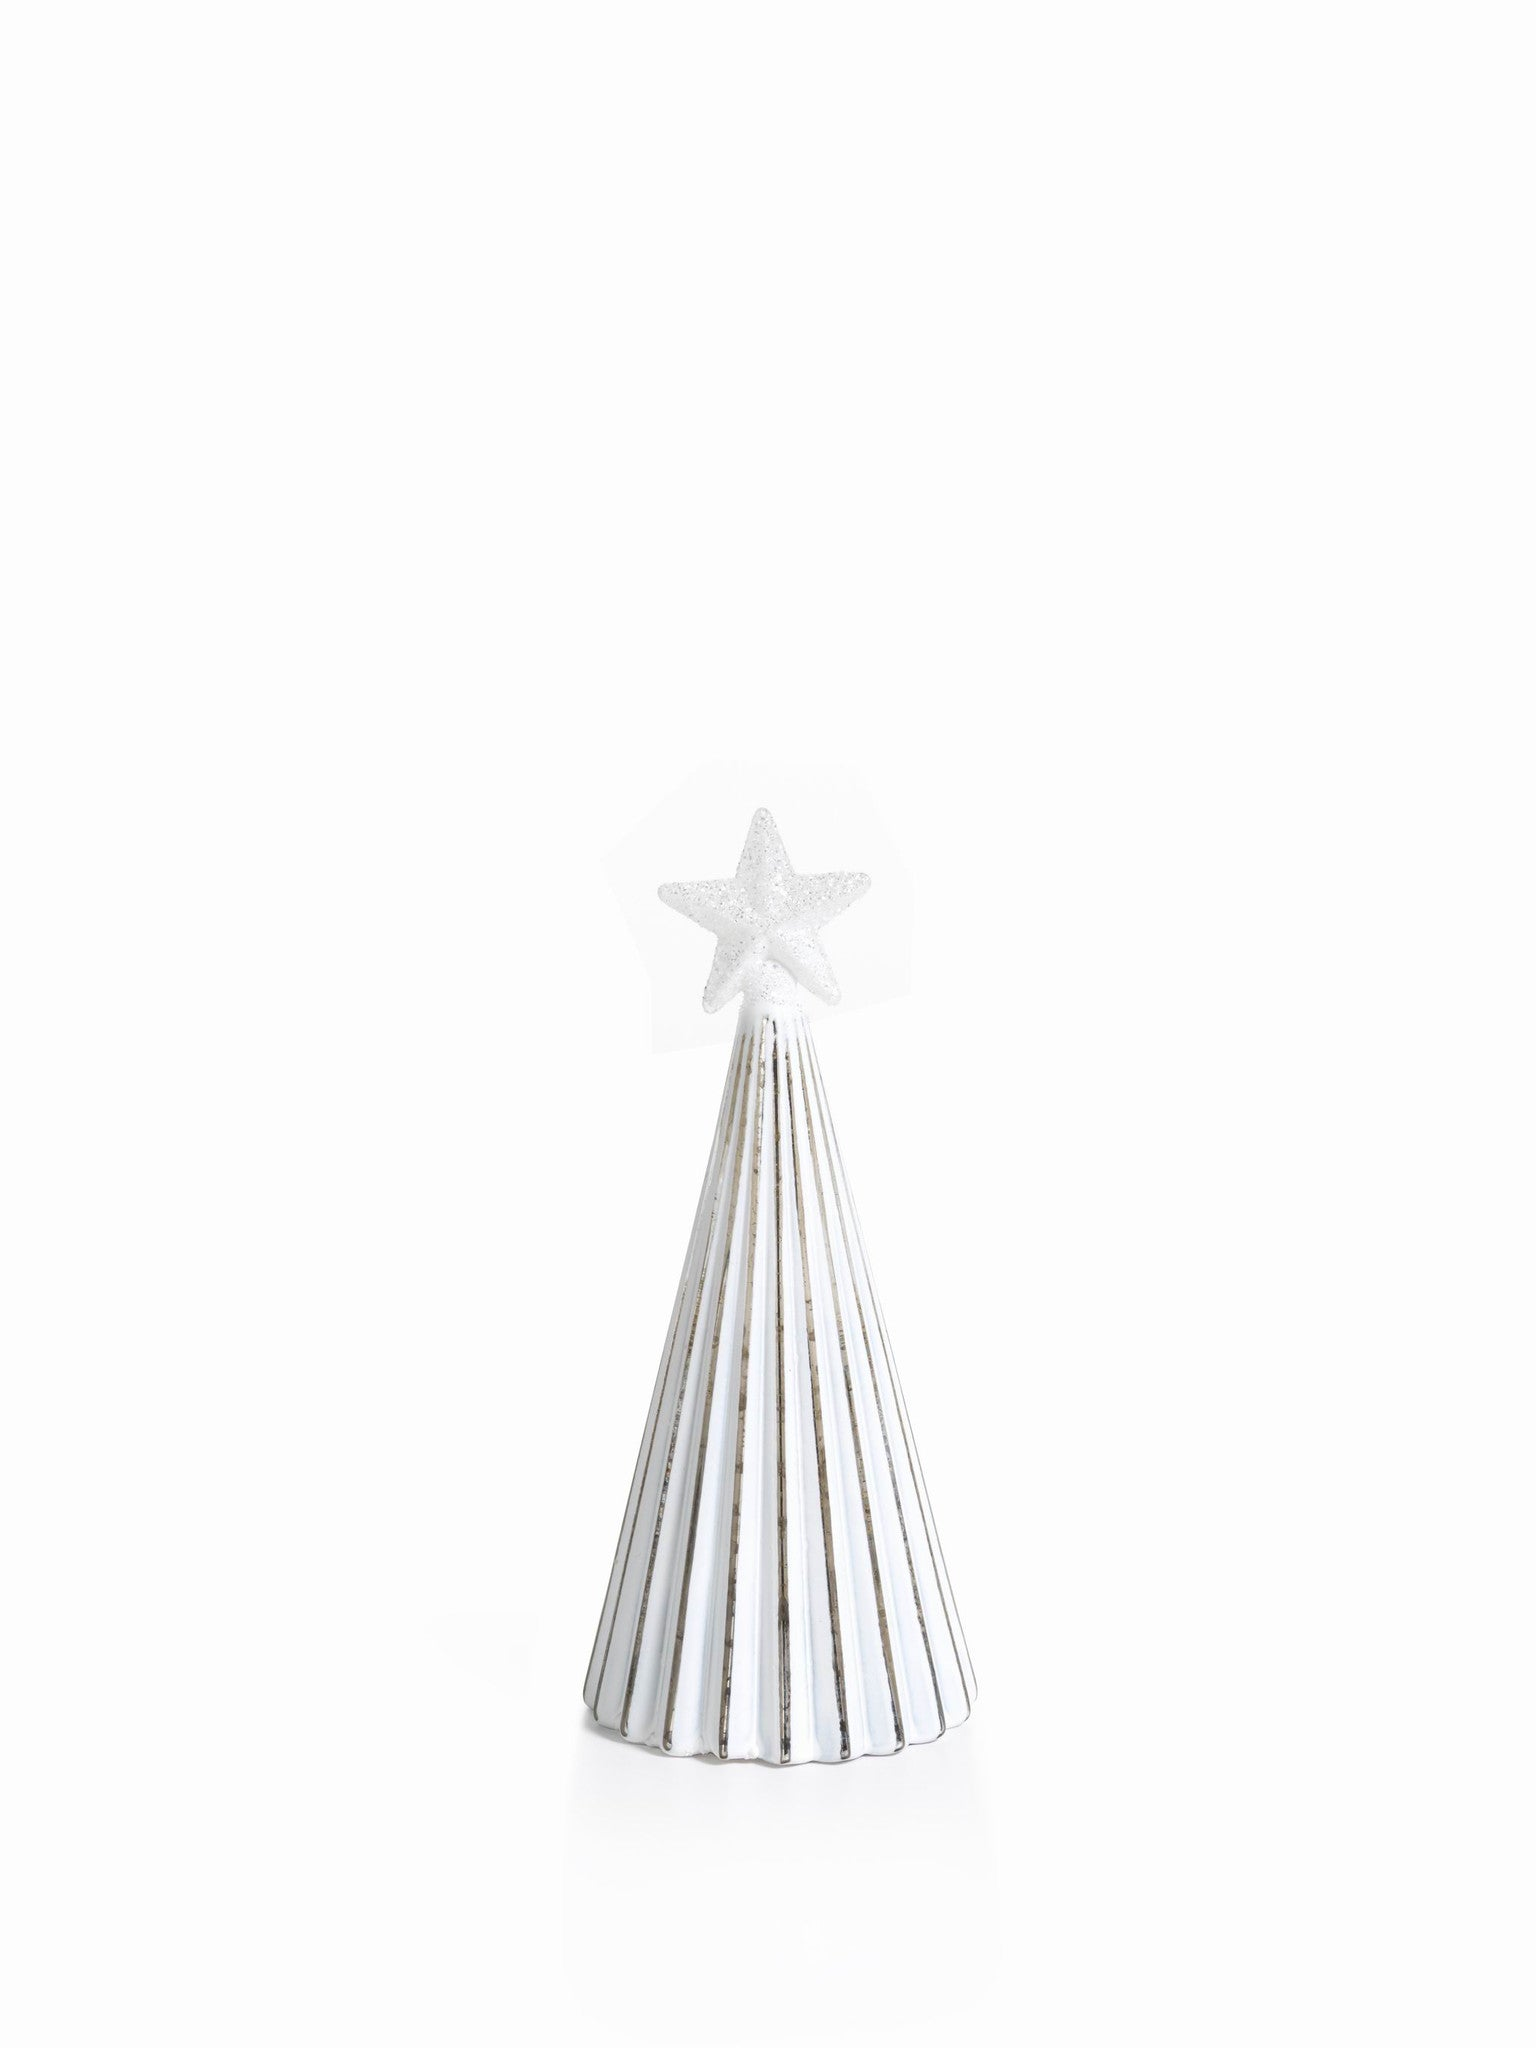 LED Glass Decorative Tree - Silver - Set of 6 - Small / Straight Line - CARLYLE AVENUE - 11